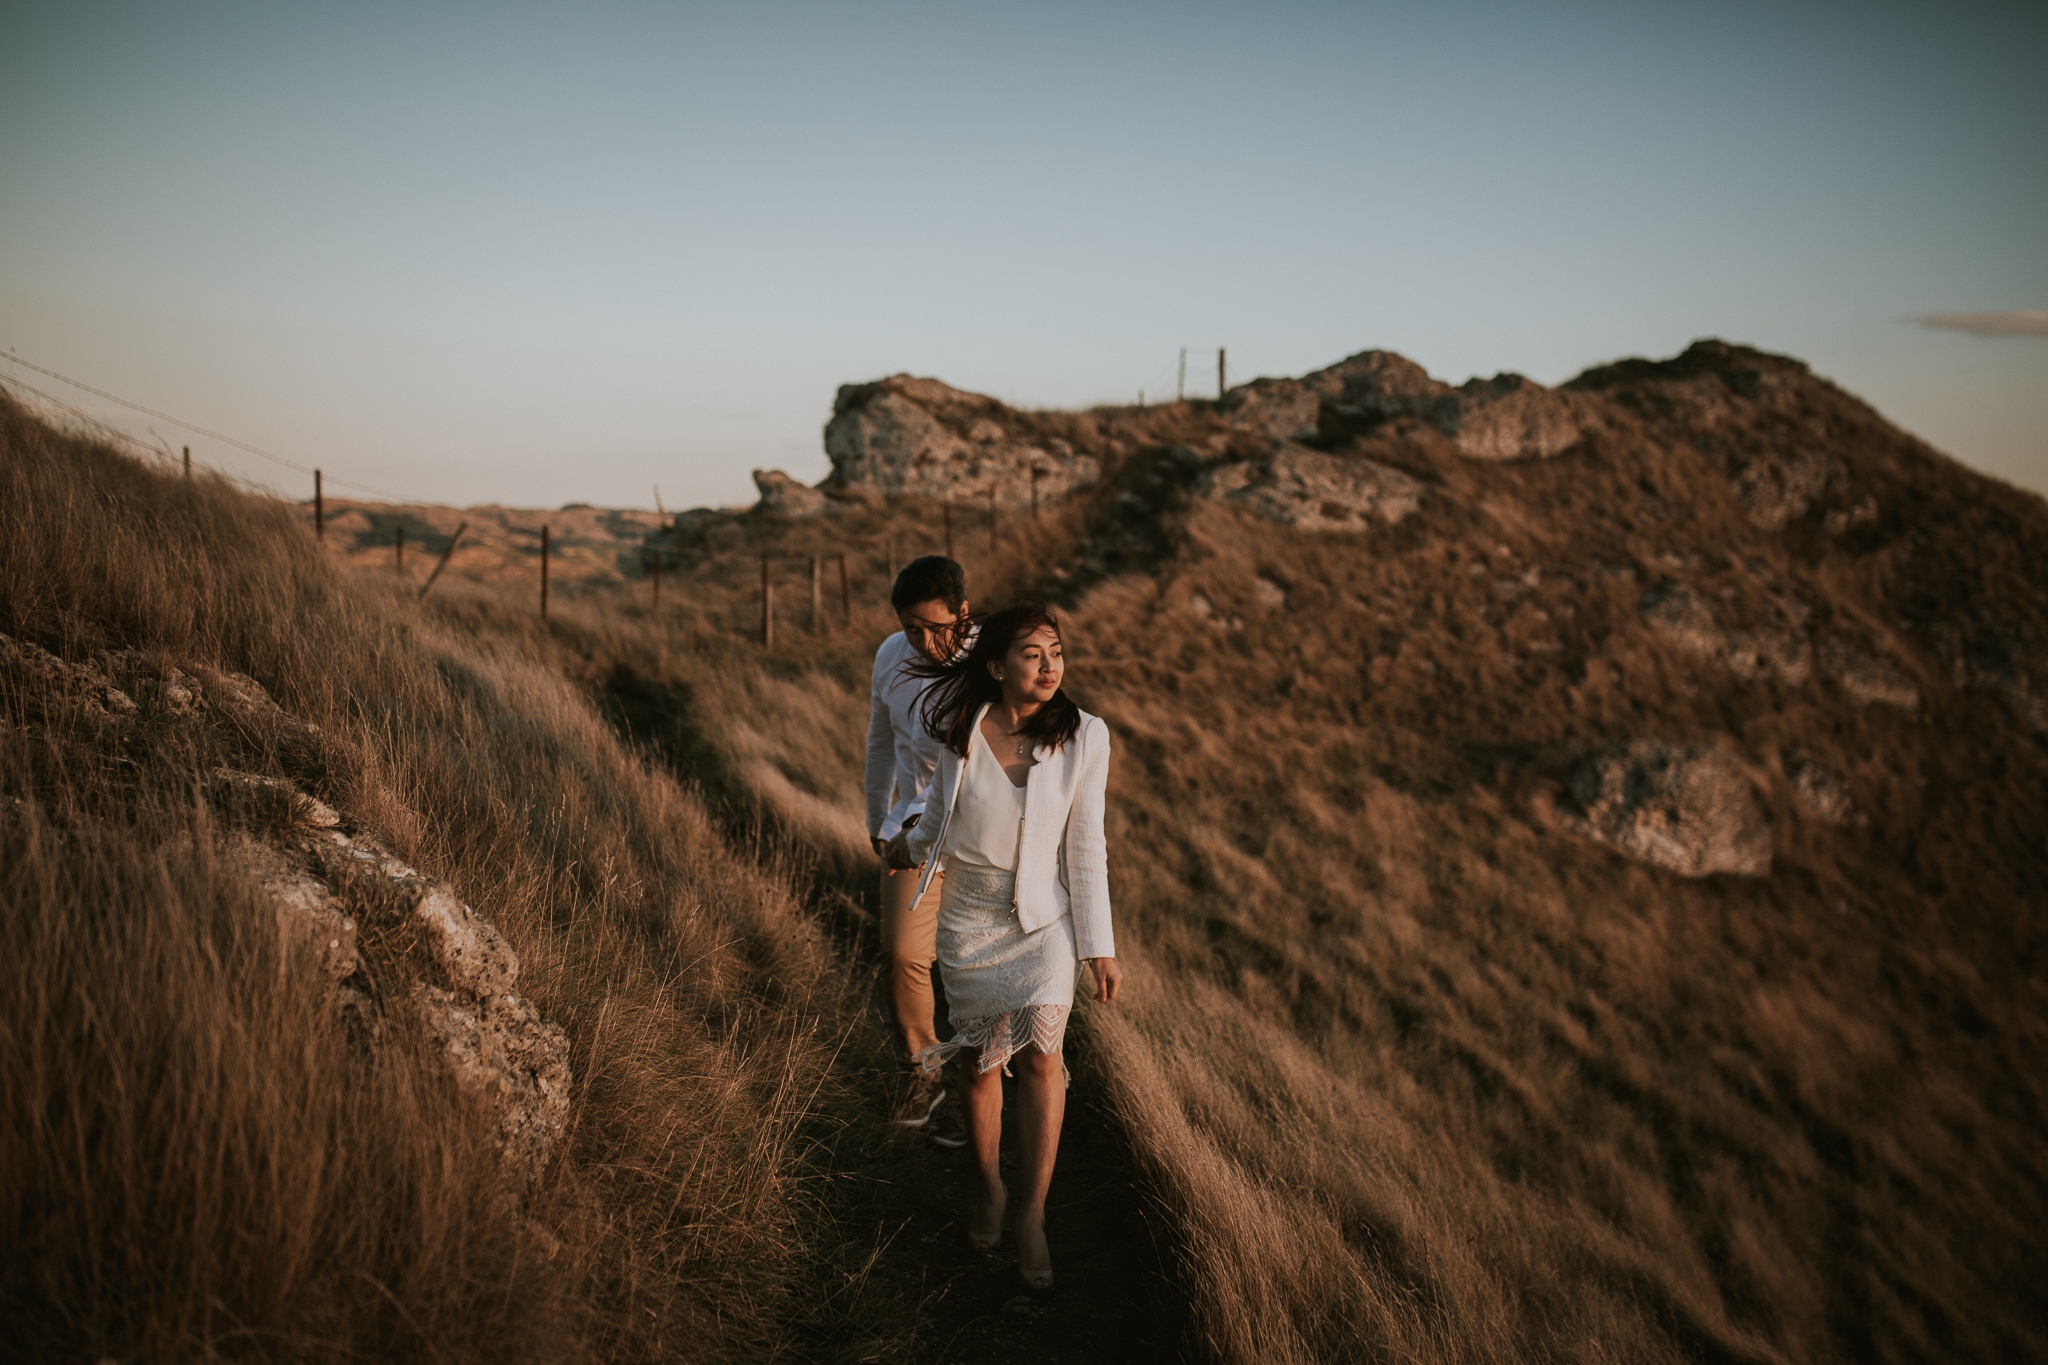 Wedding Photographers Hawkes Bay Te Mata Peak Engagement Shoot Sunset-16.jpg